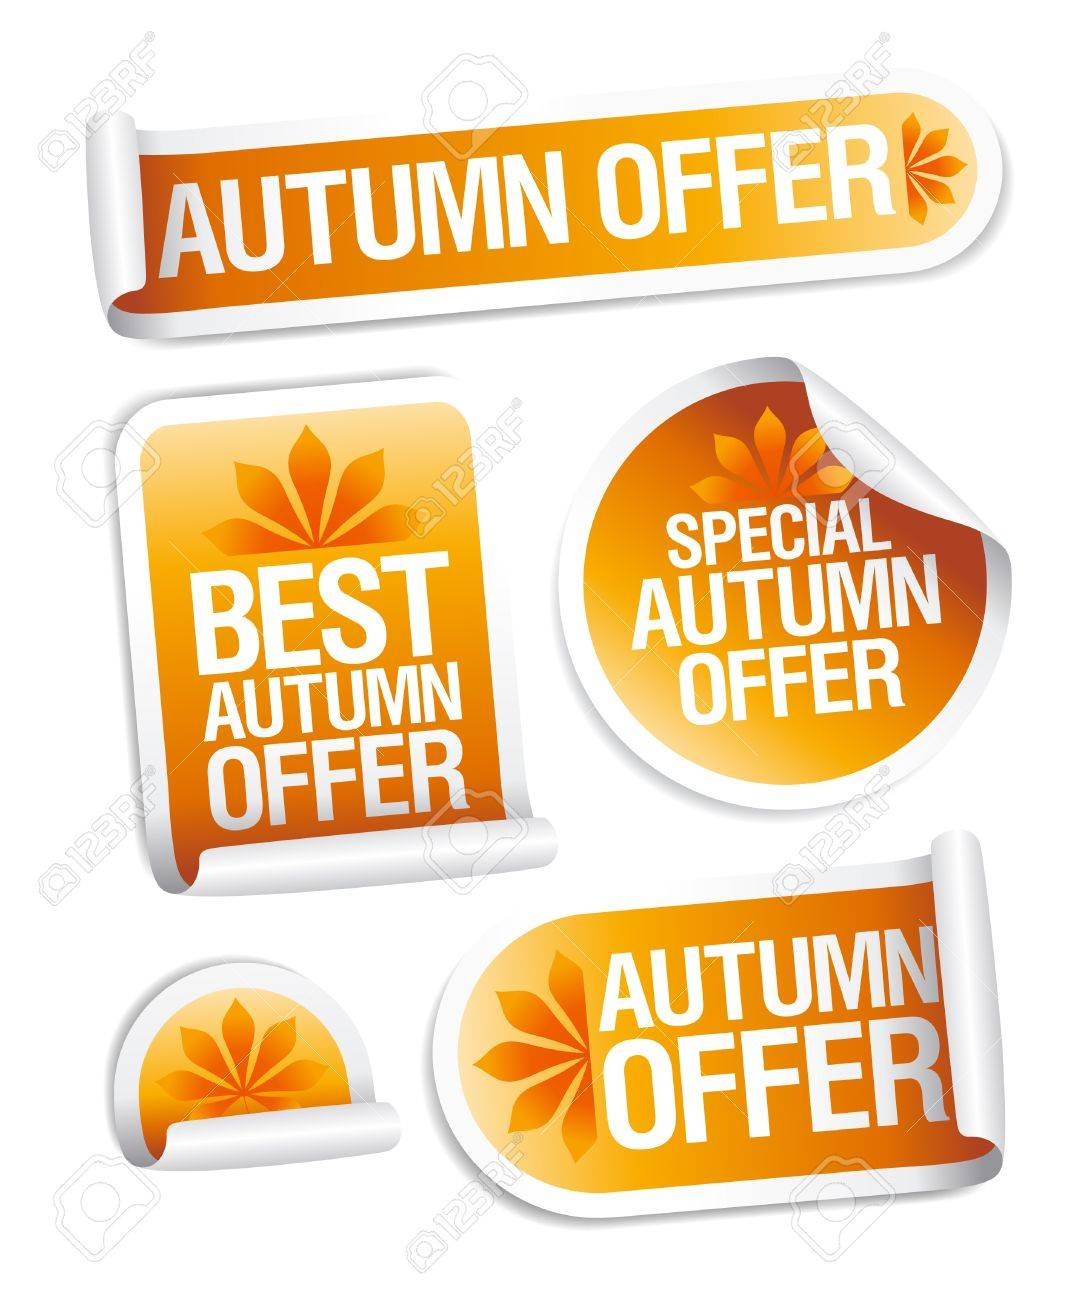 Best autumn offers stickers set. Stock Vector - 10283285